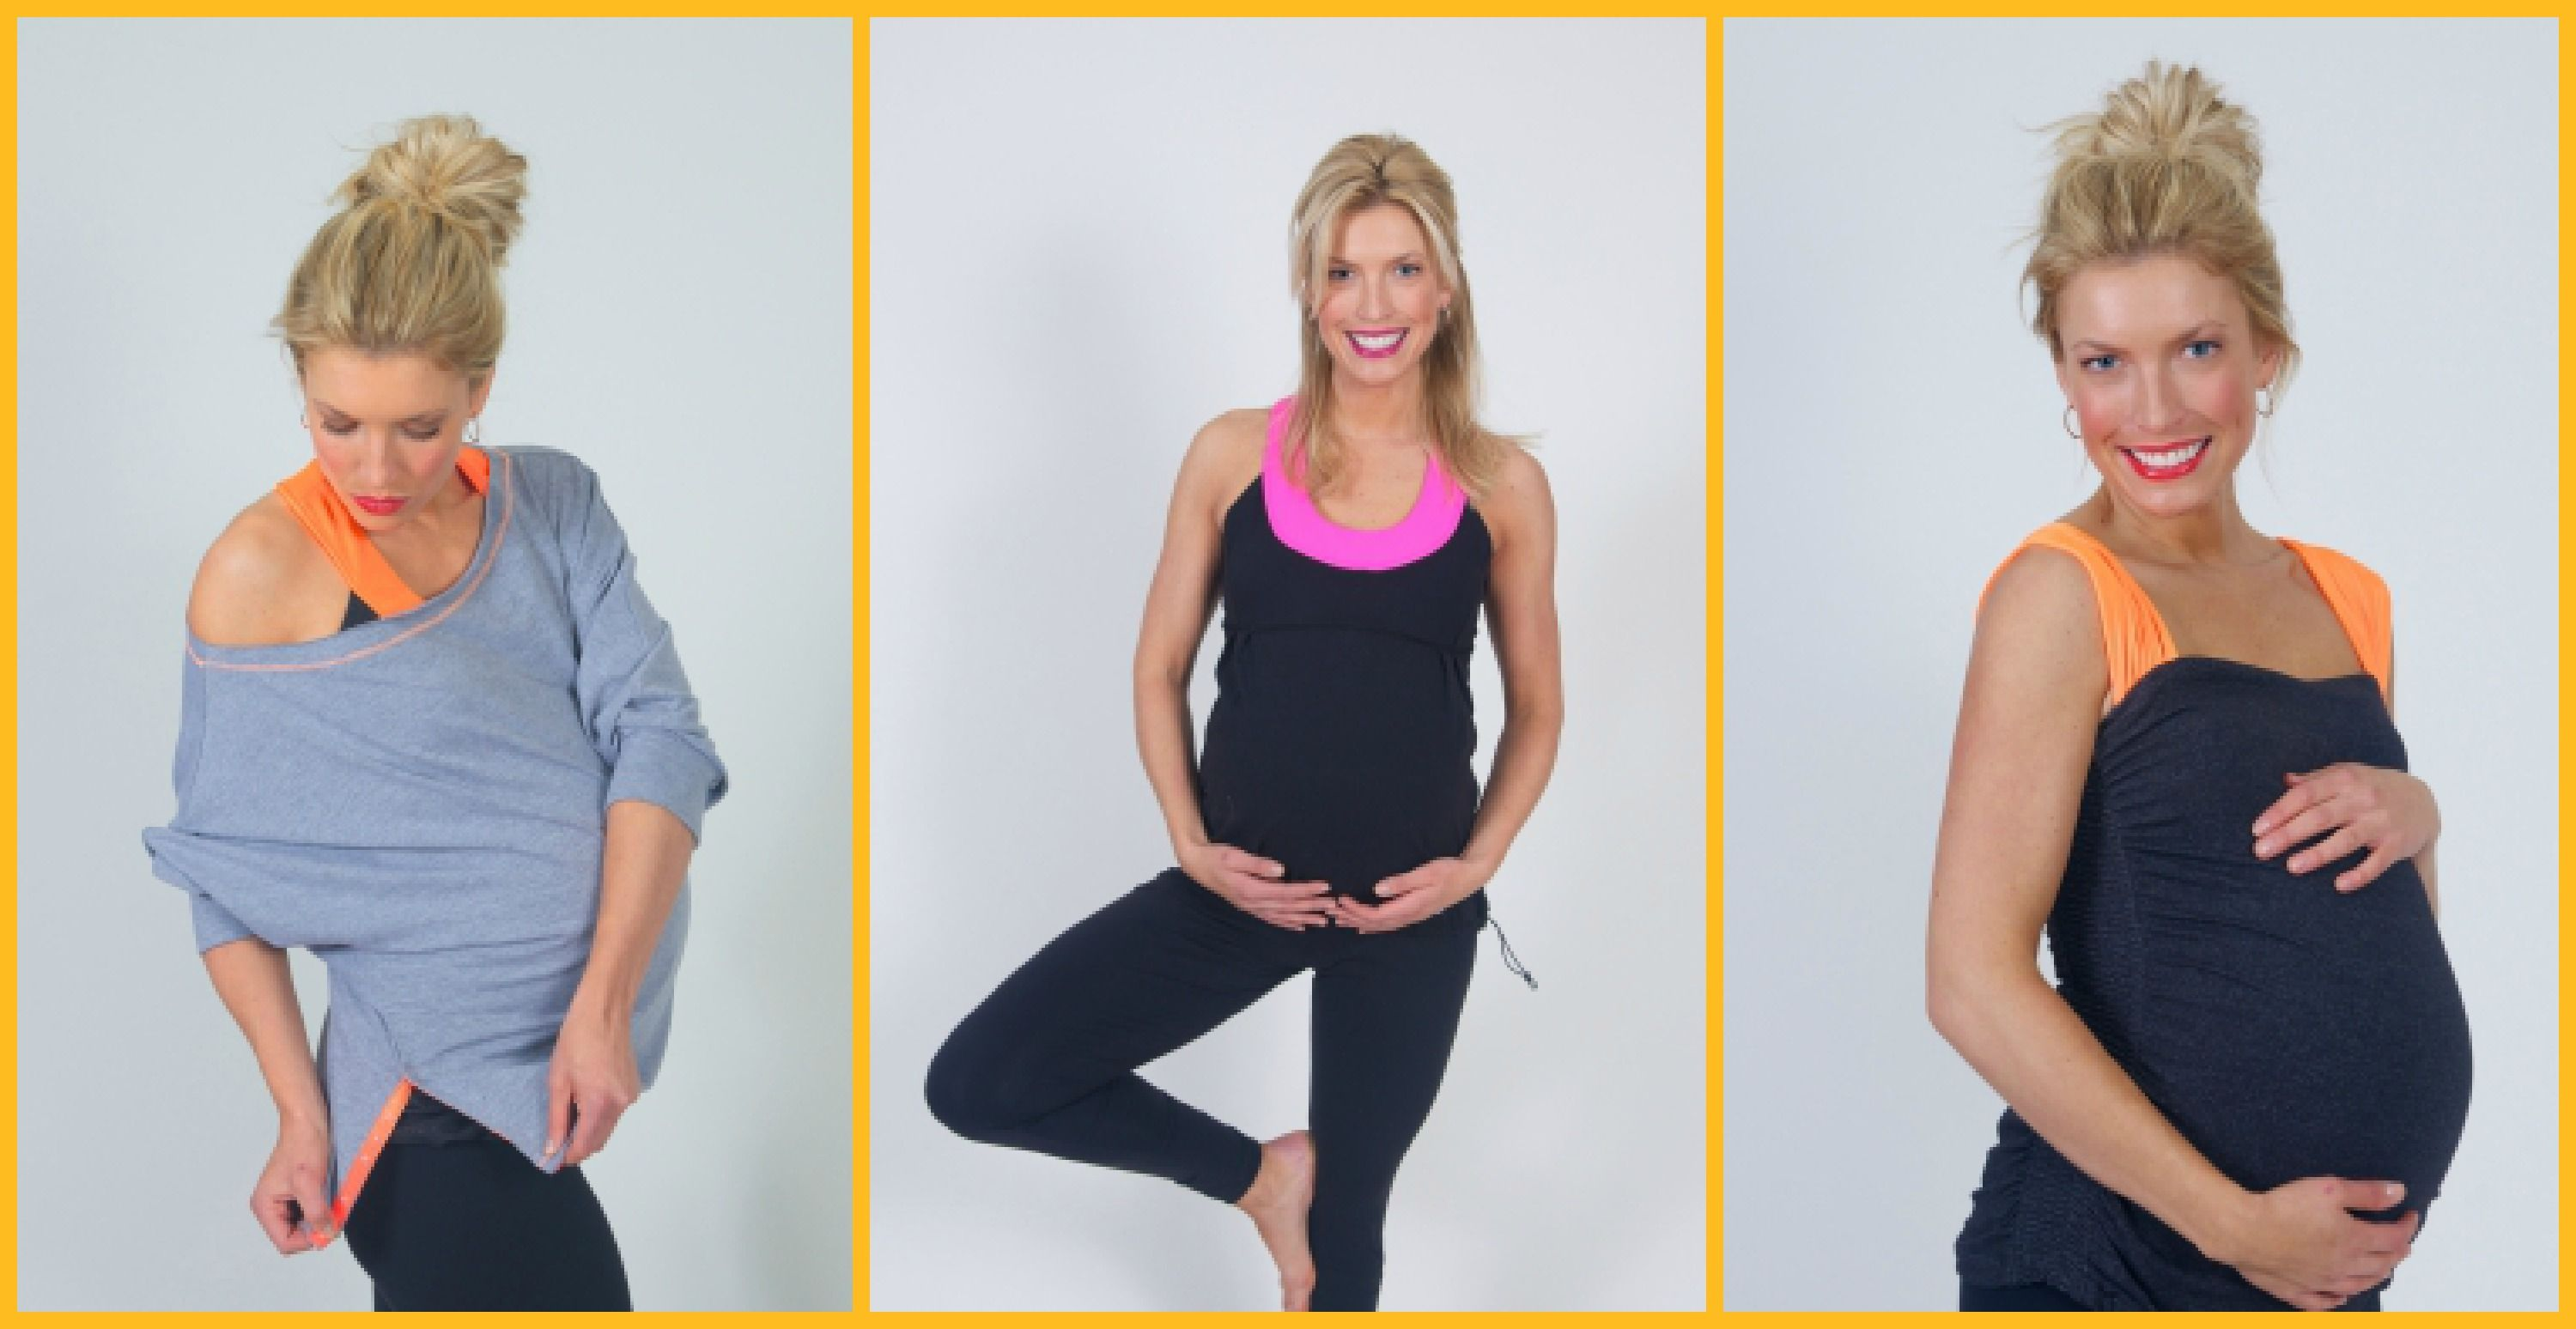 f53c14a83d Look great and feel great in these cute pregnancy workout clothes options